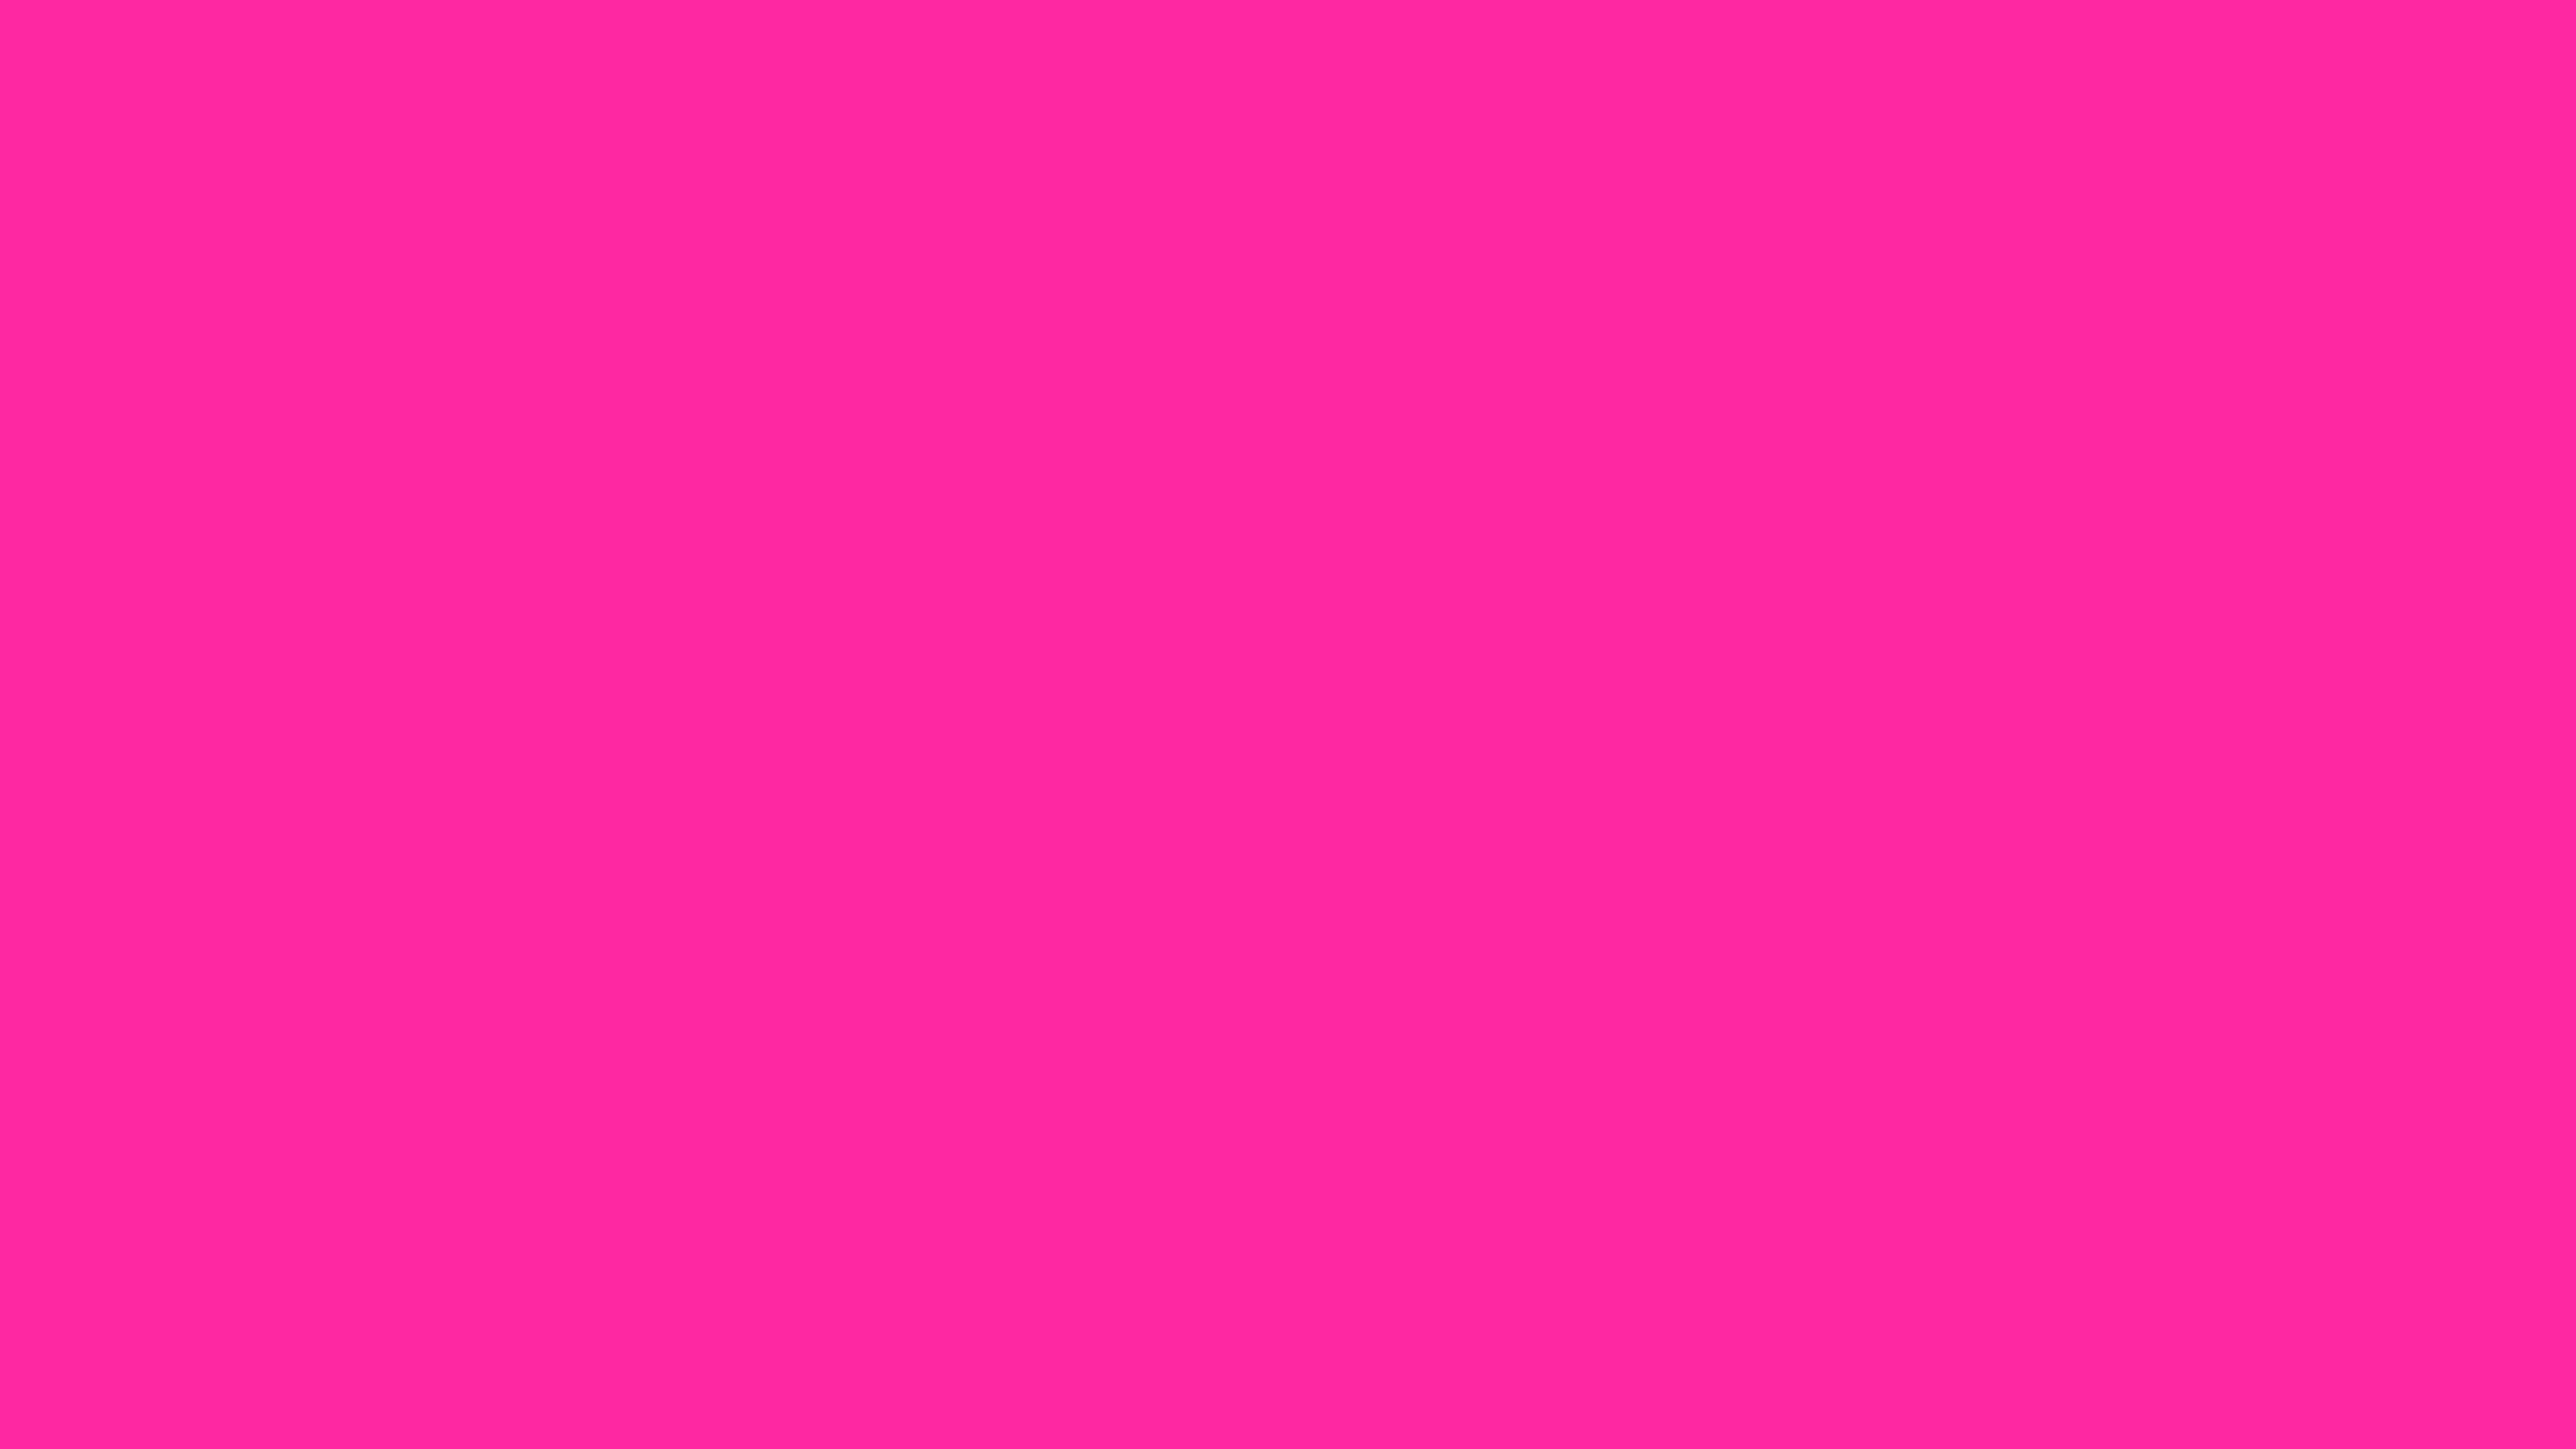 3840x2160 Persian Rose Solid Color Background